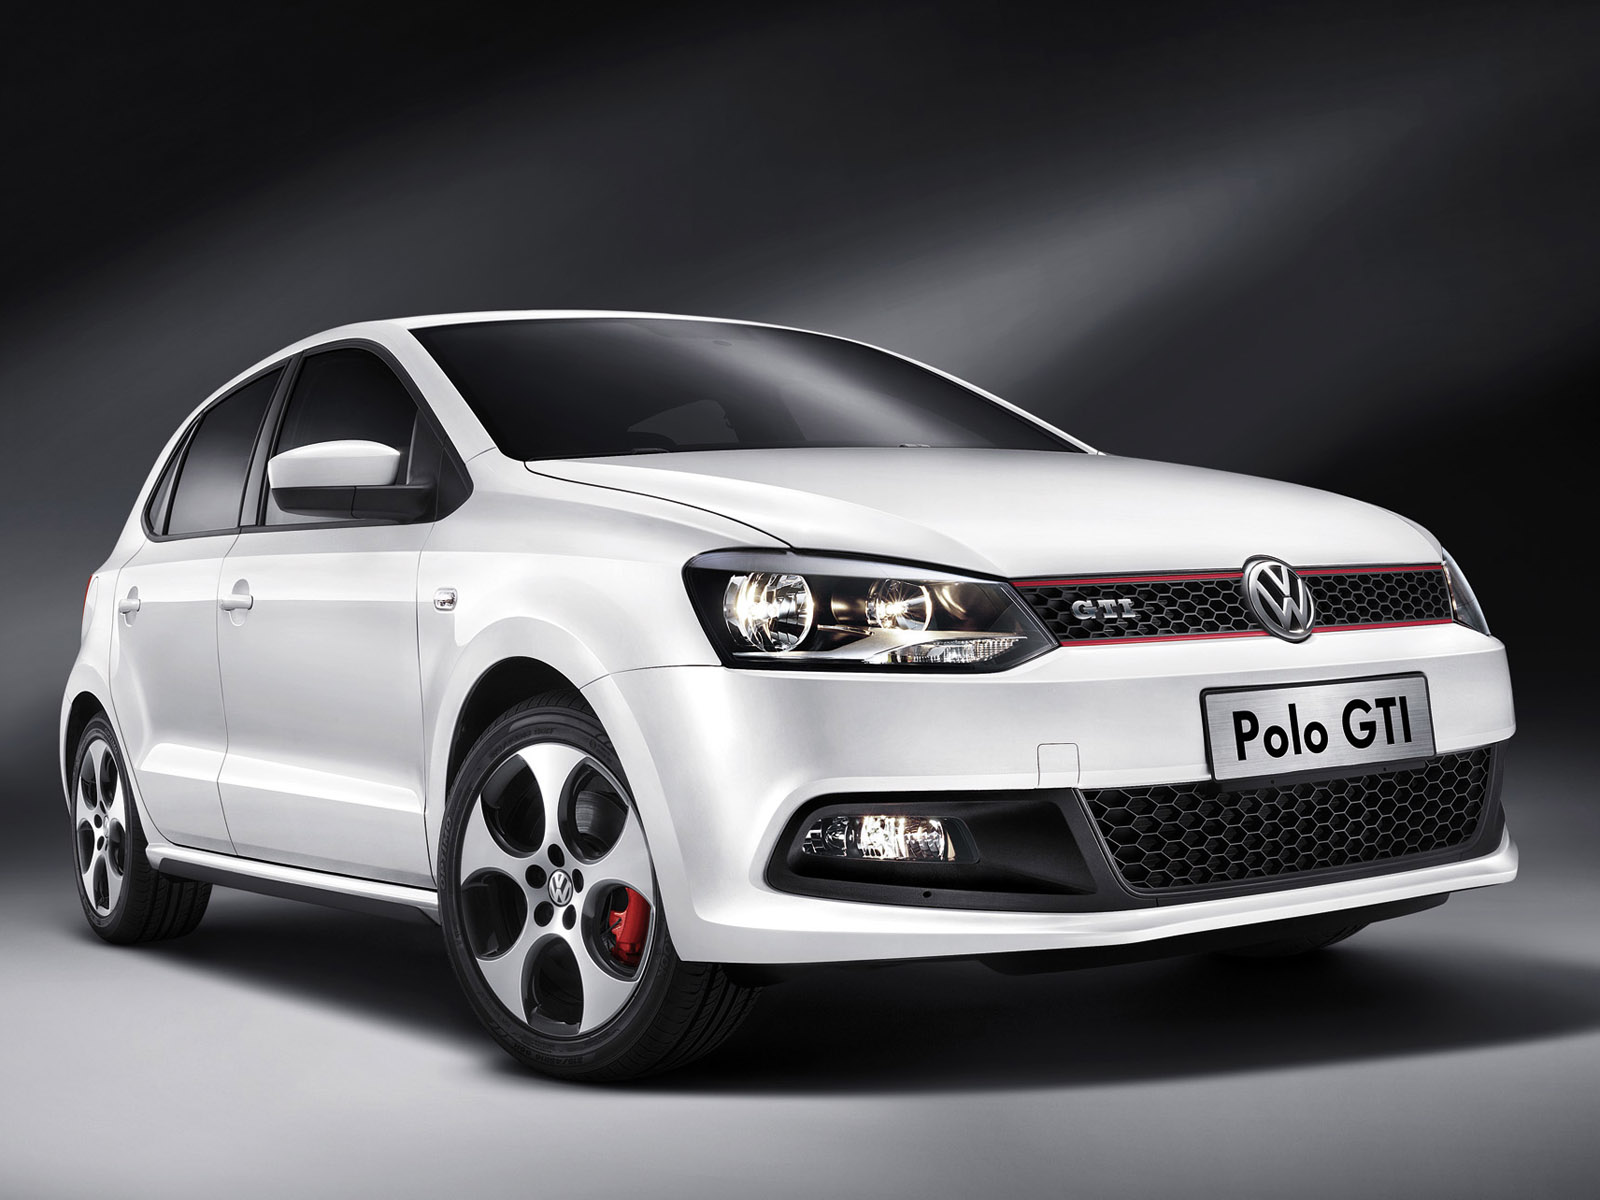 volkswagen polo gti 5 door china 2012 volkswagen polo gti 5 door china 2012 photo 06 car in. Black Bedroom Furniture Sets. Home Design Ideas